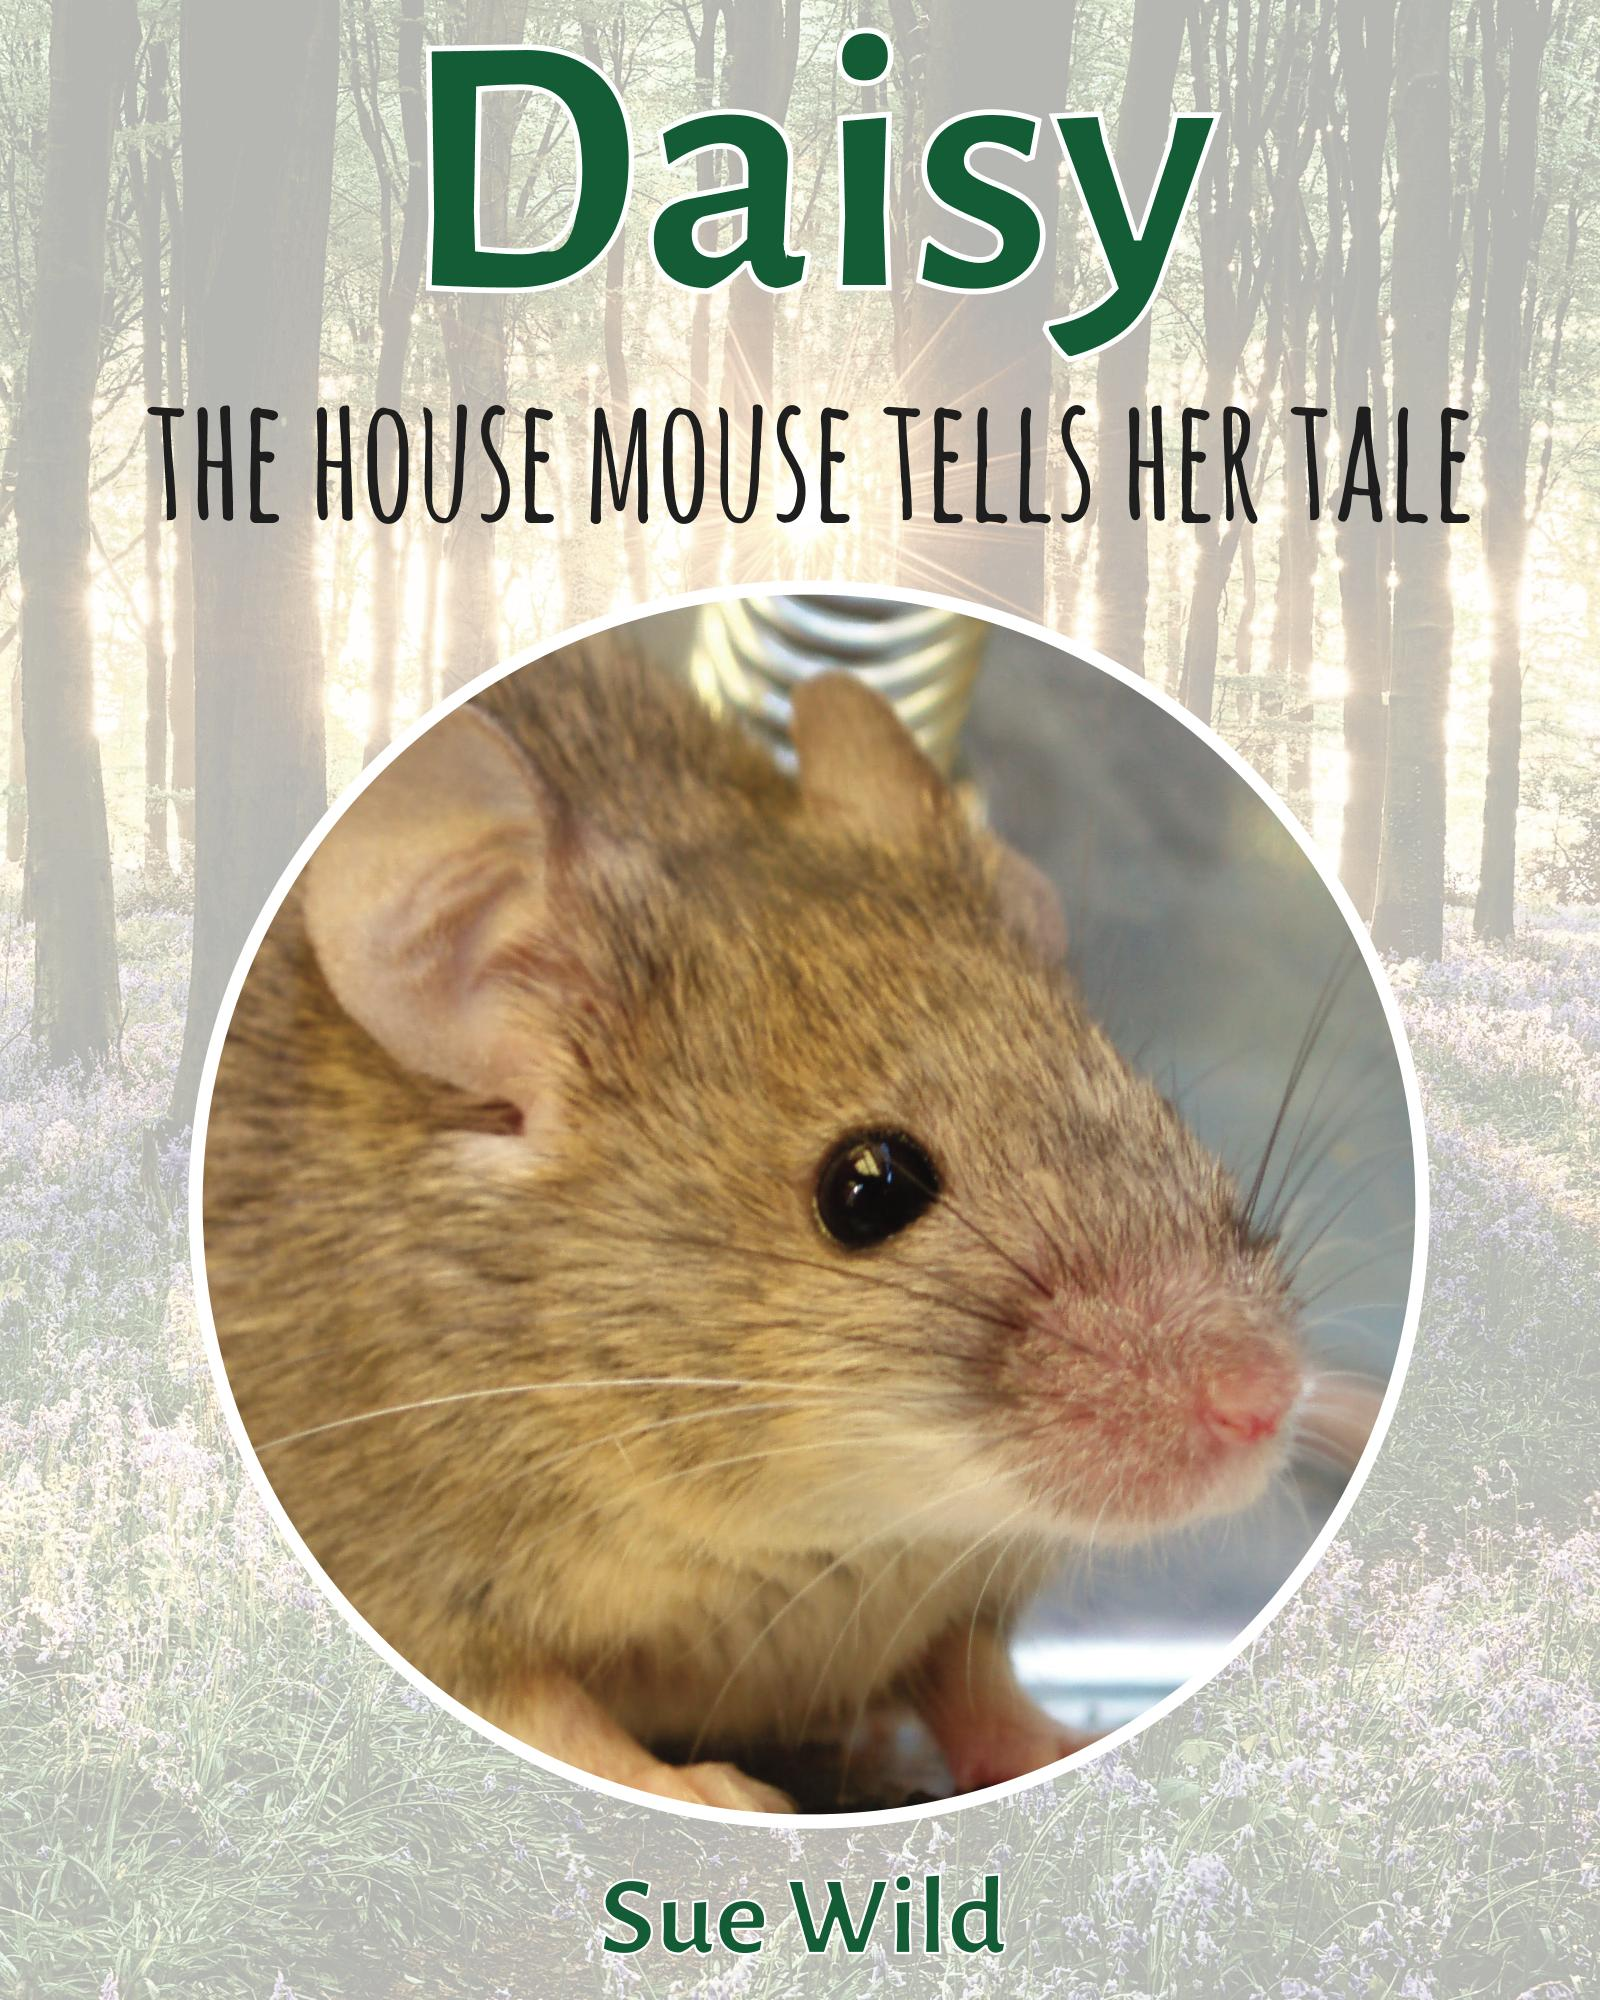 U.K. wildlife children's bedtime stories Daisy the house mouse tells her tale